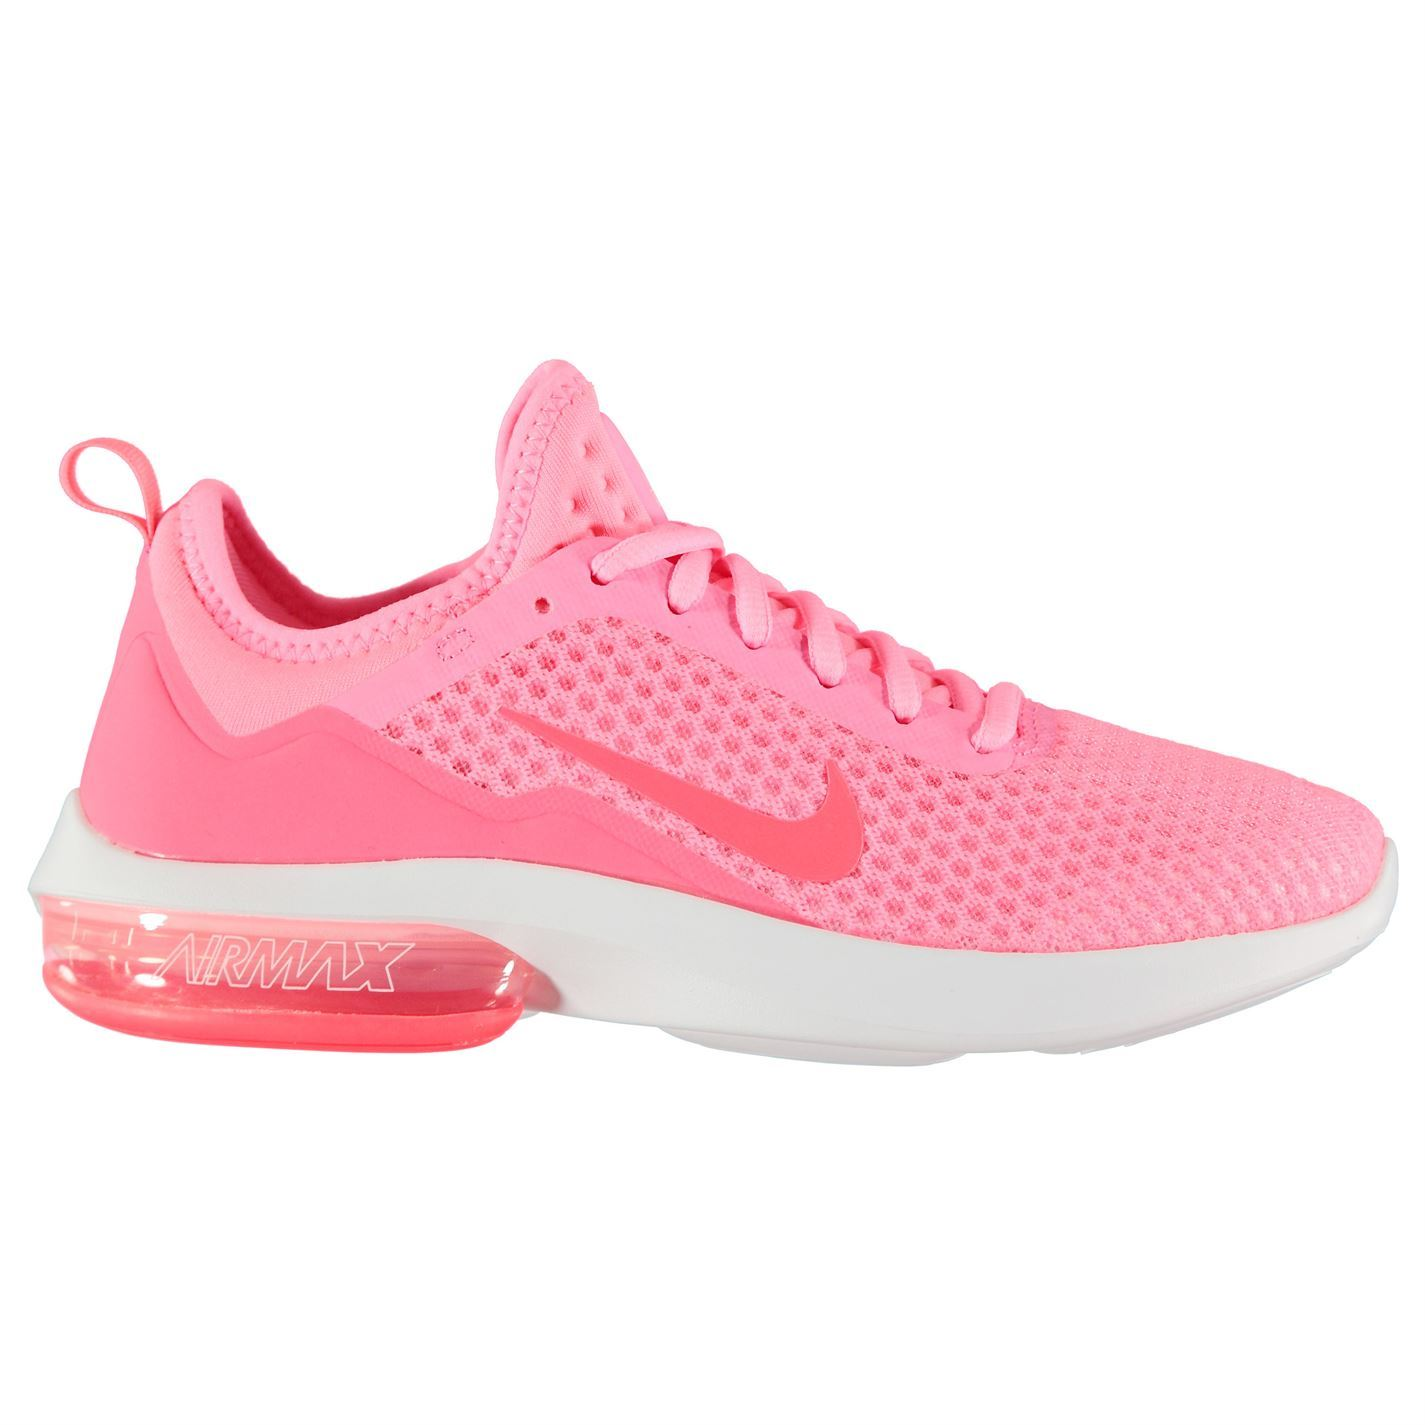 online store aceaf 8a122 ... Nike Air Max Kantara Running Shoes Womens Pink Run Jogging Trainers  Sneakers ...